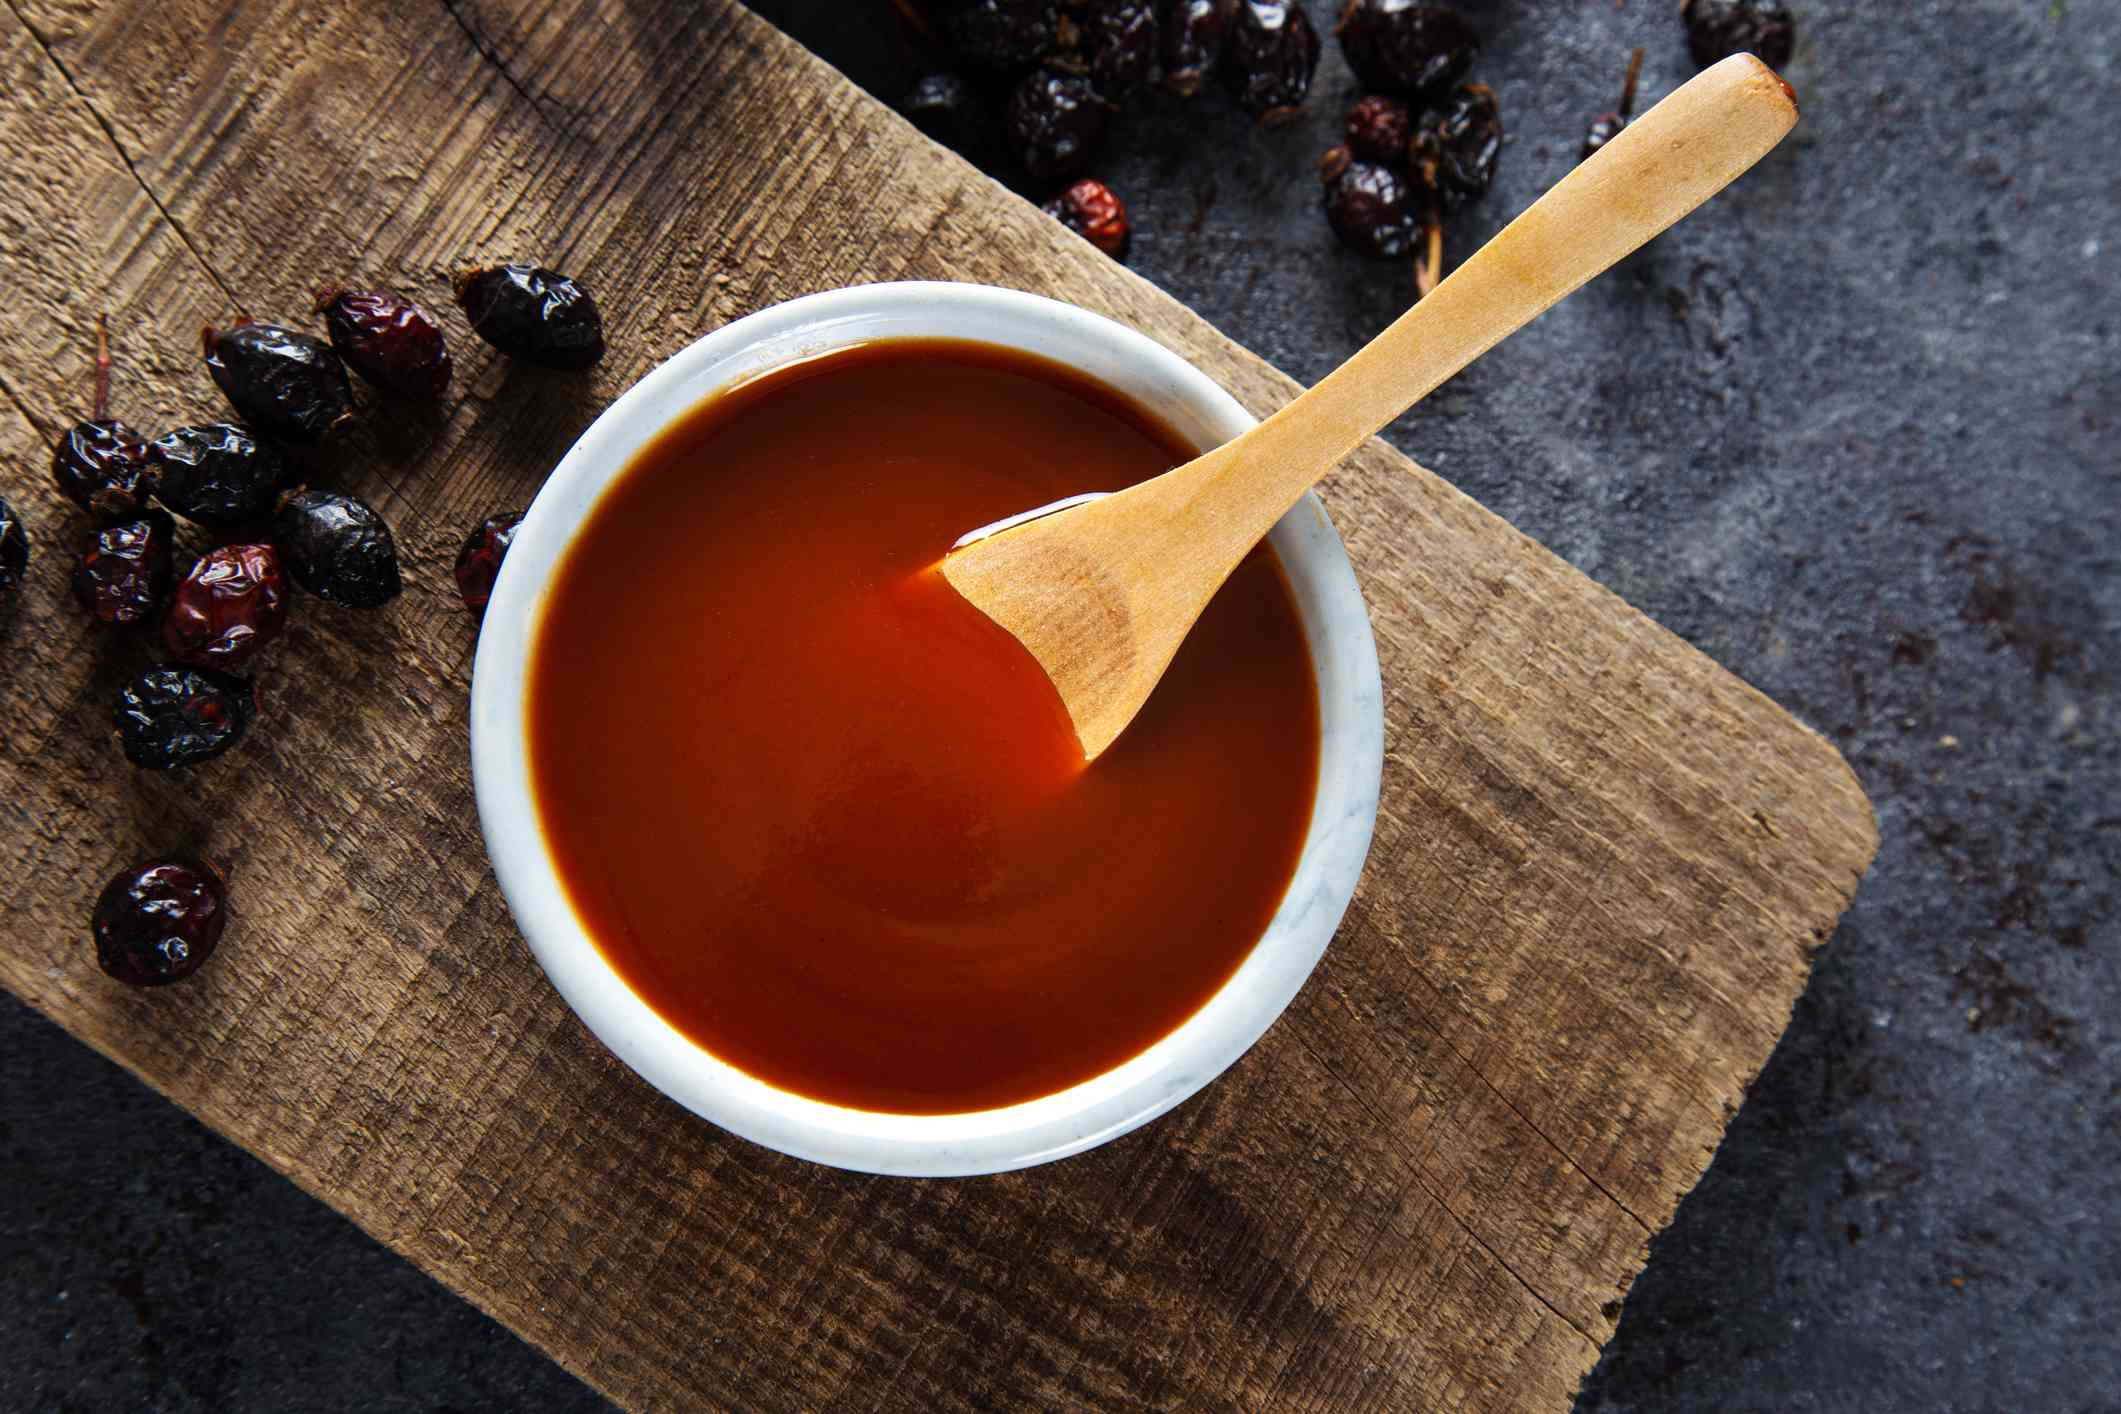 Homemade rosehip marmalade in ceramic bowl with dried rose hip fruits on wooden board.